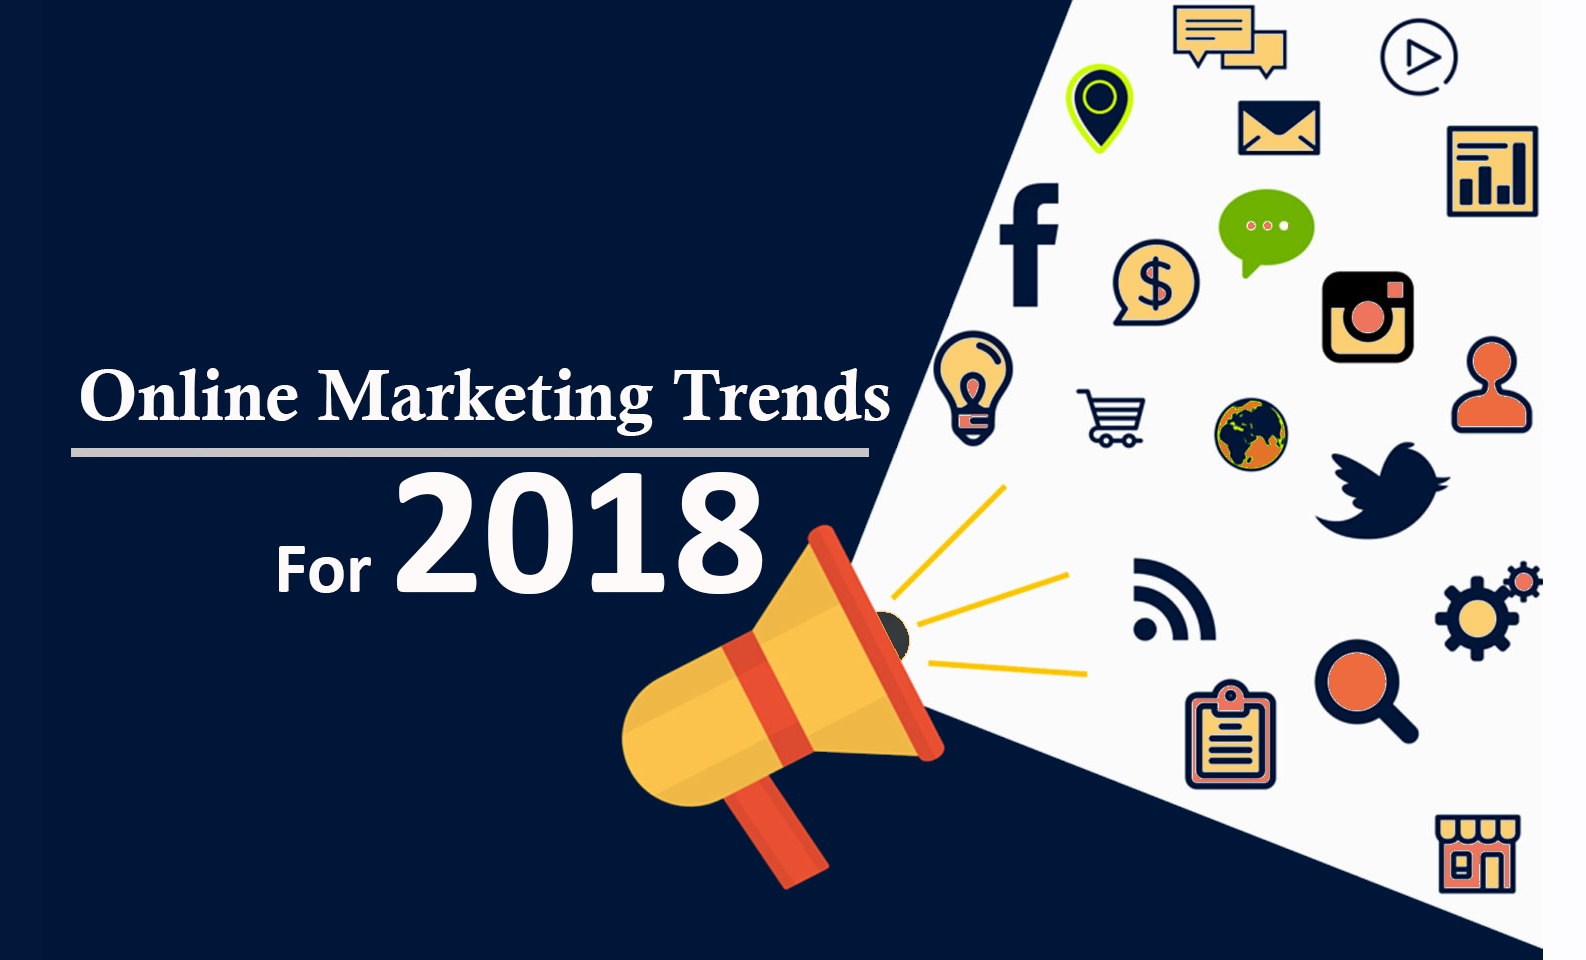 Online Marketing Trends & Strategies For 2018